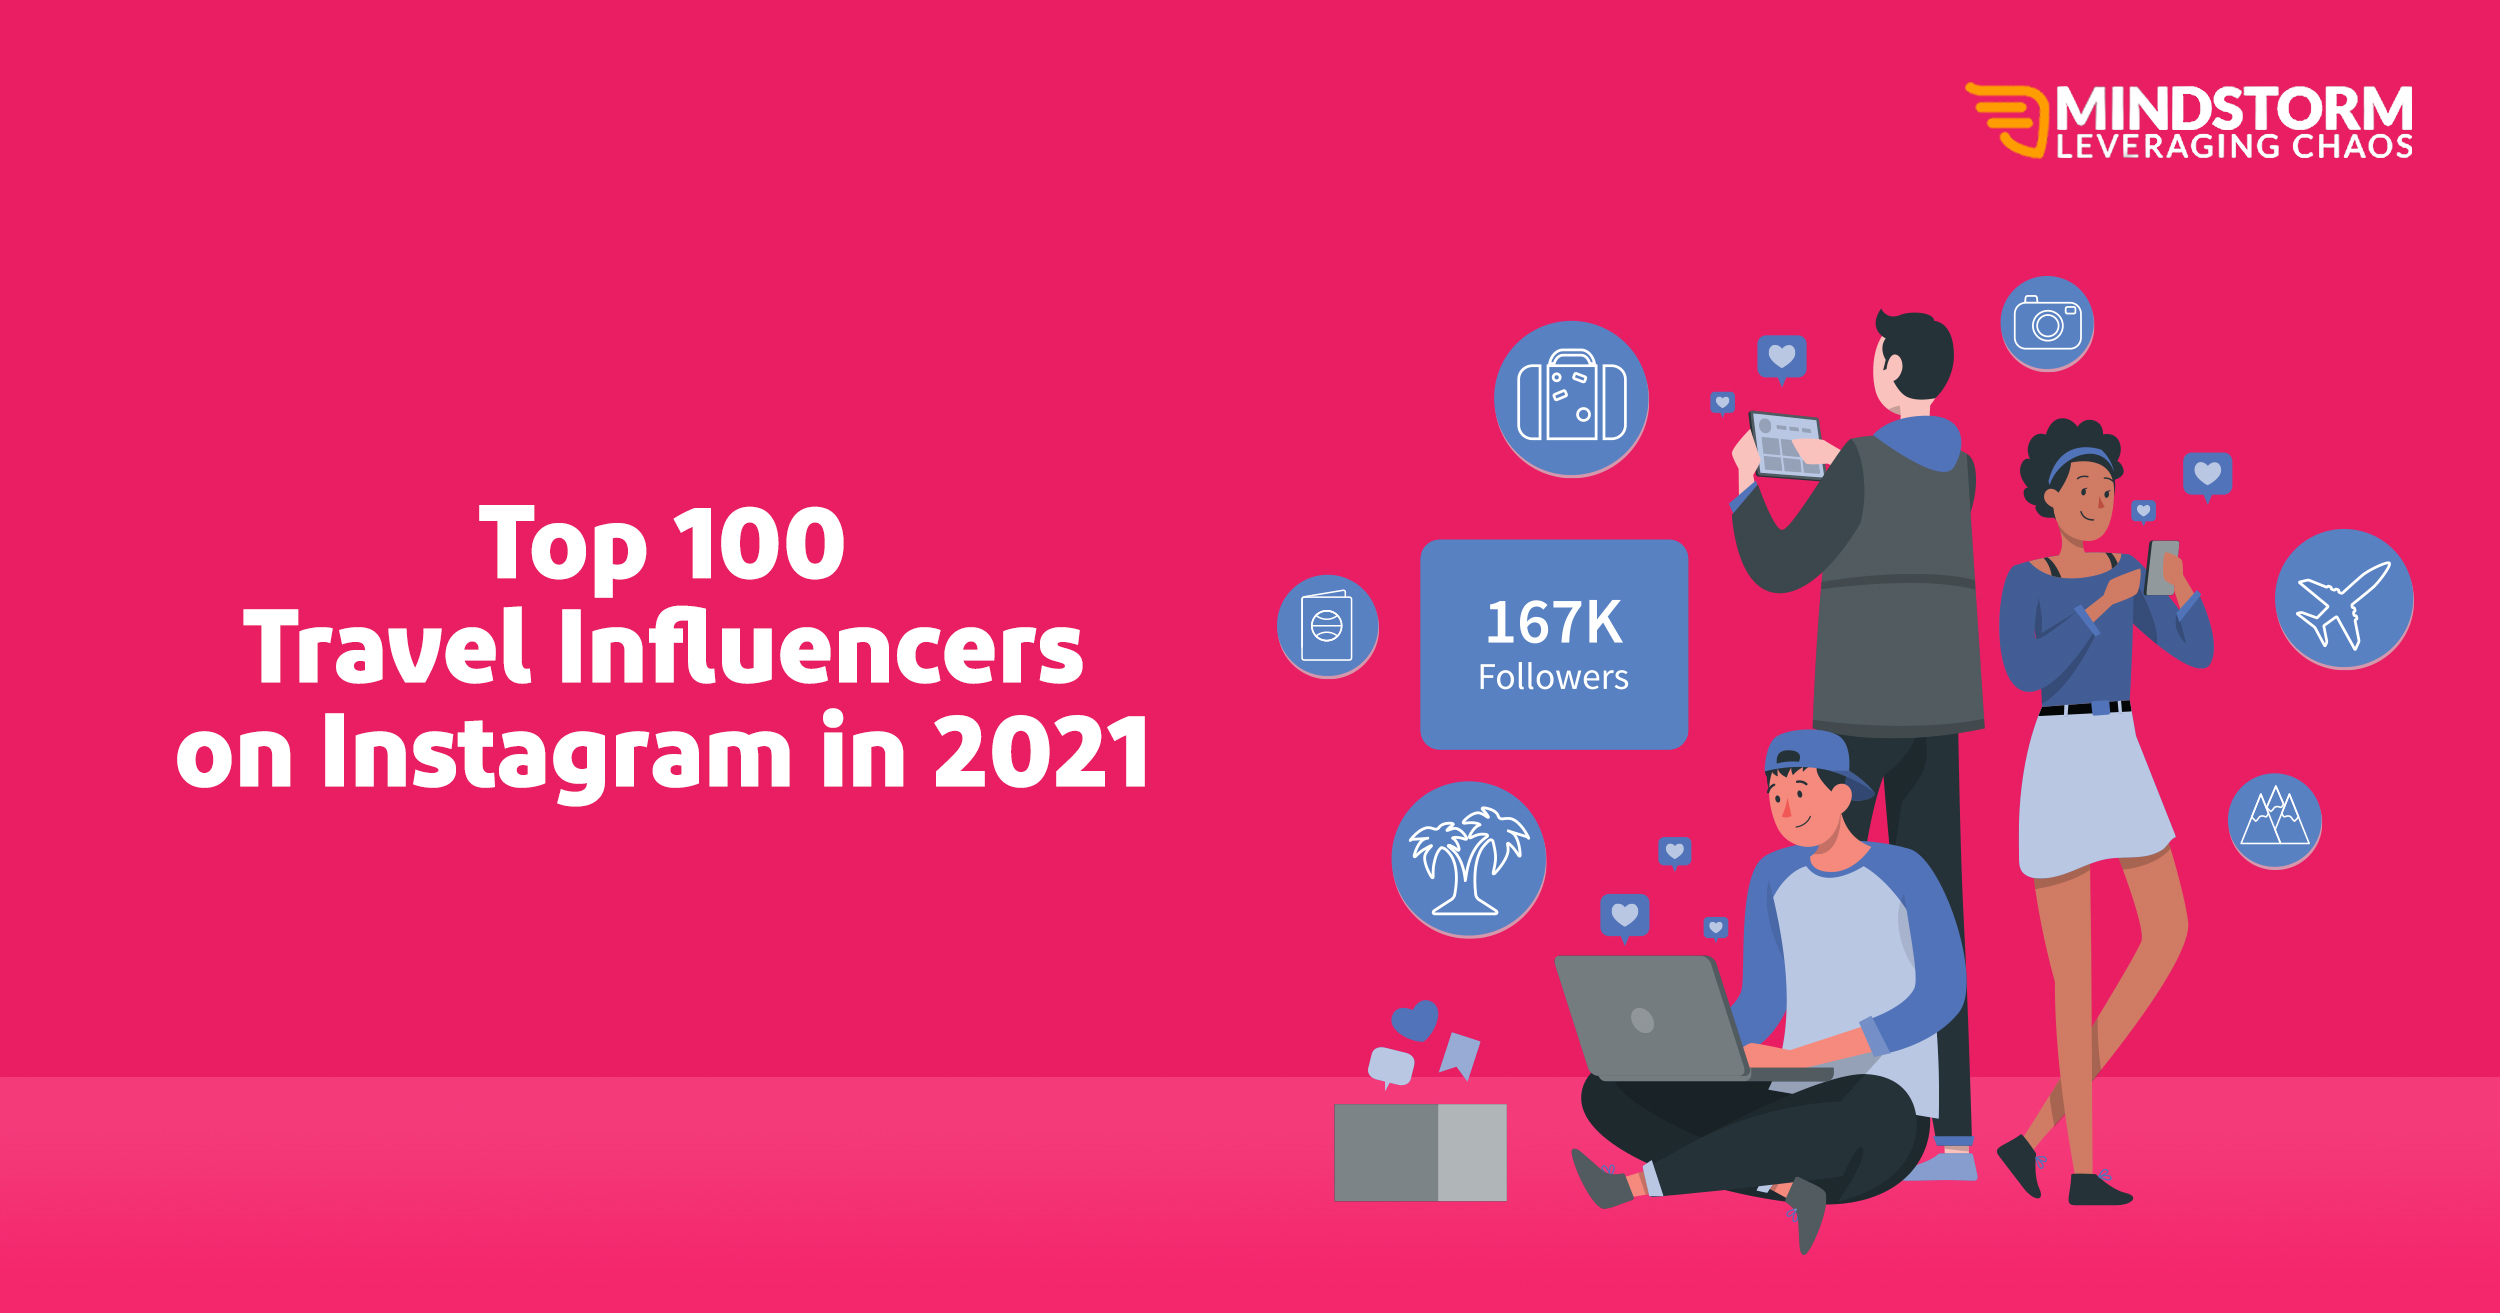 Top 100 Travel Influencers on Instagram in 2021!